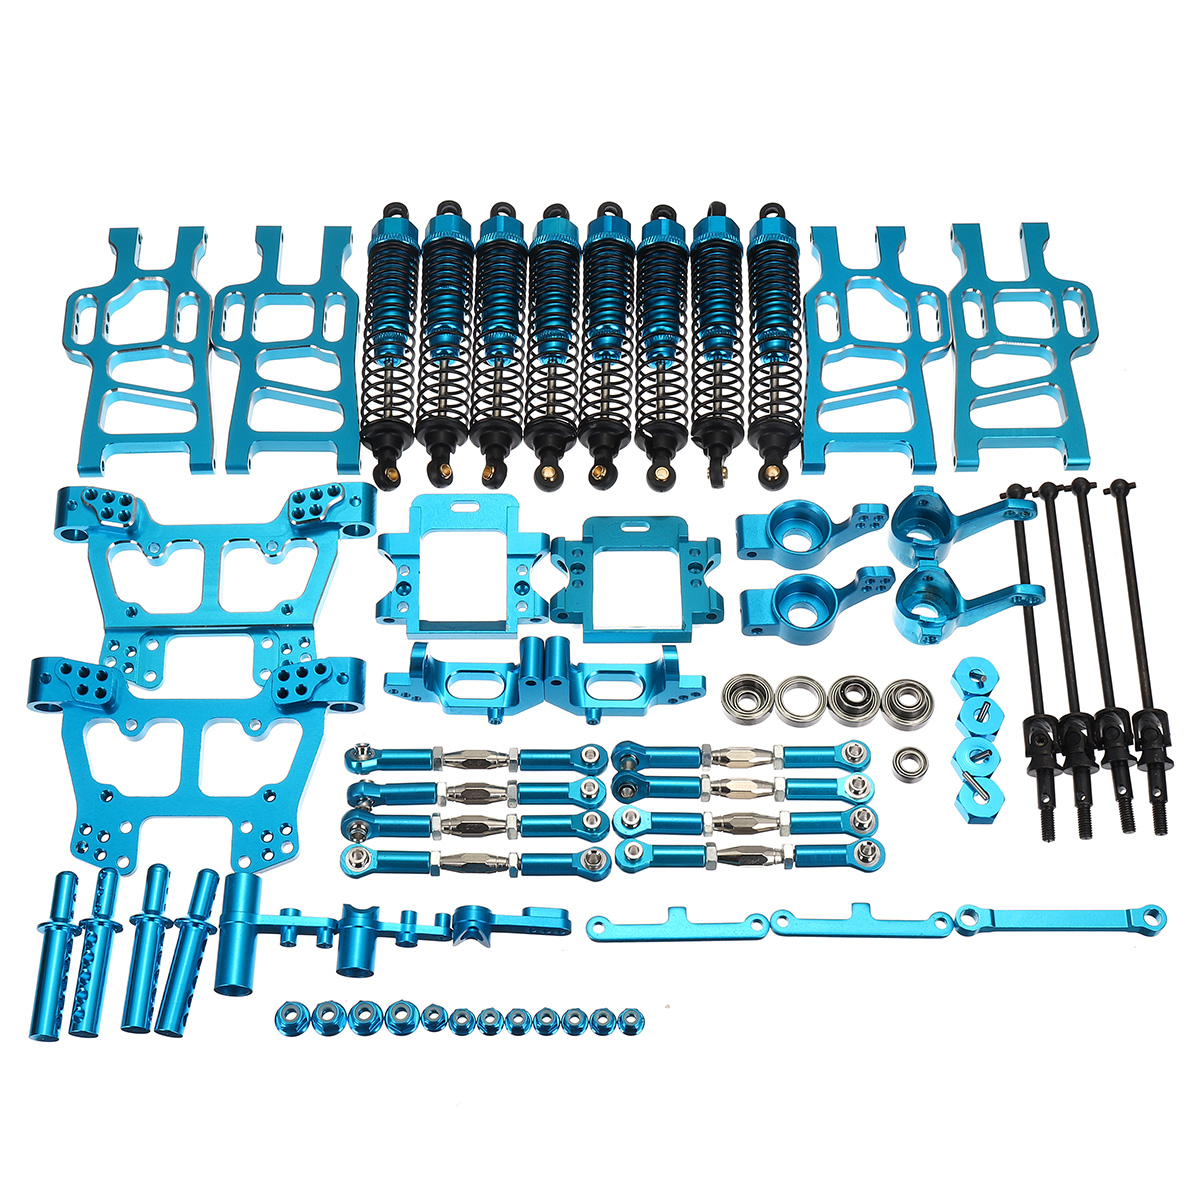 Blue Upgrade Parts Package For HSP RC 1:10 94111 94108 Crawler Car Monster Truck Blue Aluminum Alloy Parts & Accs hsp 04001 metal aluminum chassis upgrade parts 03601 for redcat volcano epx exceed infinitive ep 1 10 rc buggy monster truck